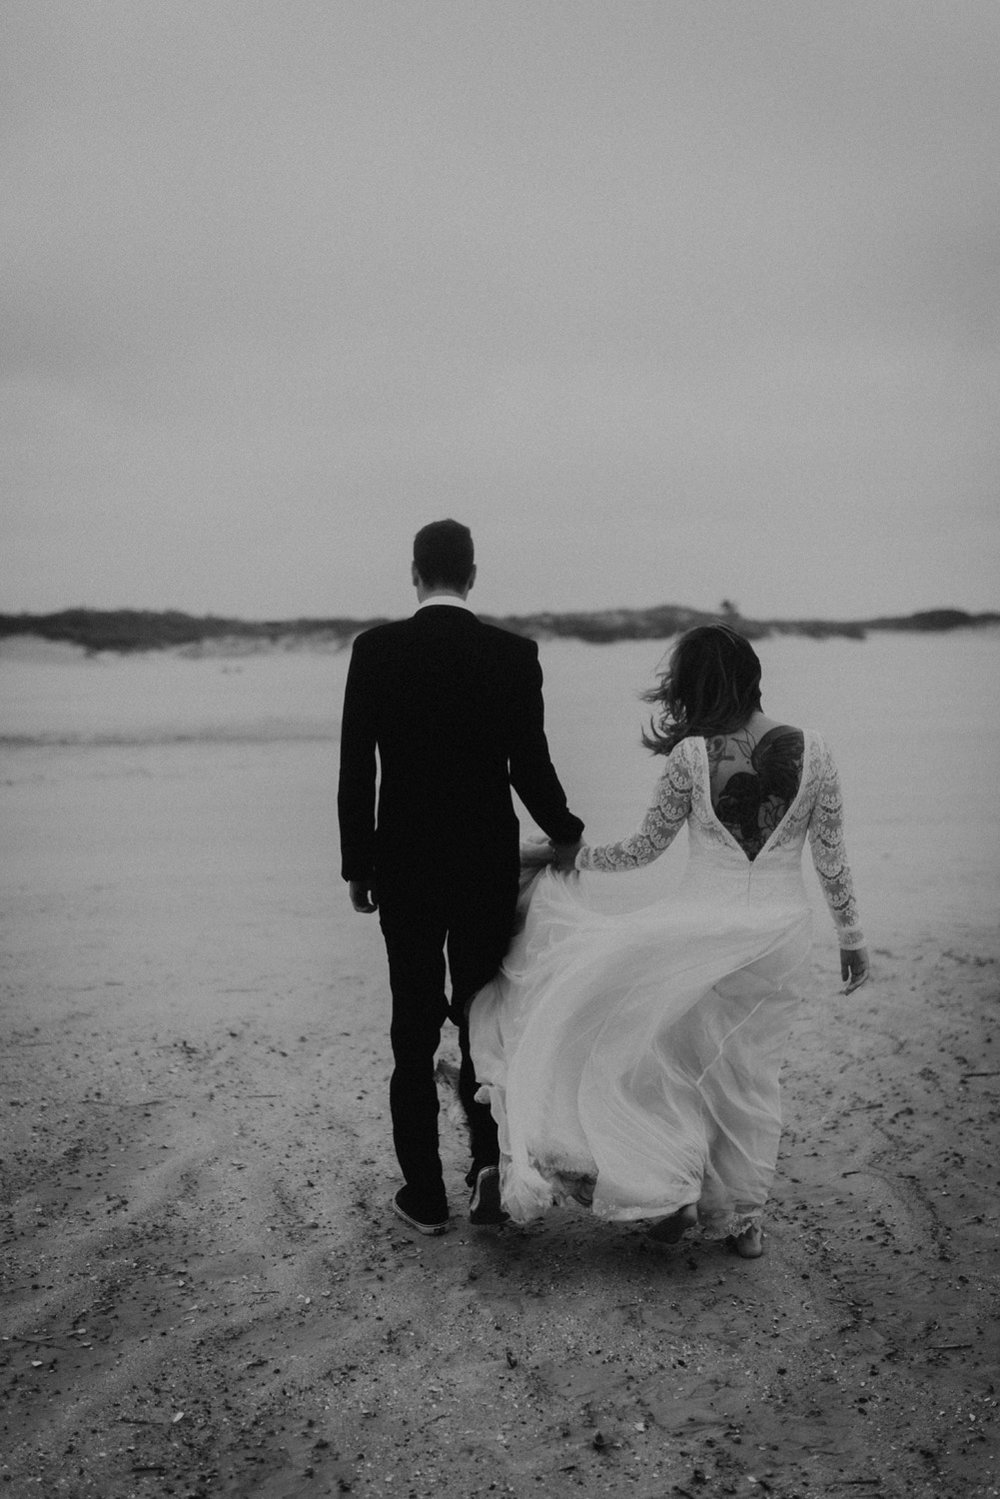 kylewillisphoto_kyle_Willis_Photography_liz_gibbs_brigantine_beach_atlantic_city_wedding_philadelphia_jersey_shore_new_nyc_engagement_delaware_engaged_married_rainy_photos_ac_boho38.jpg